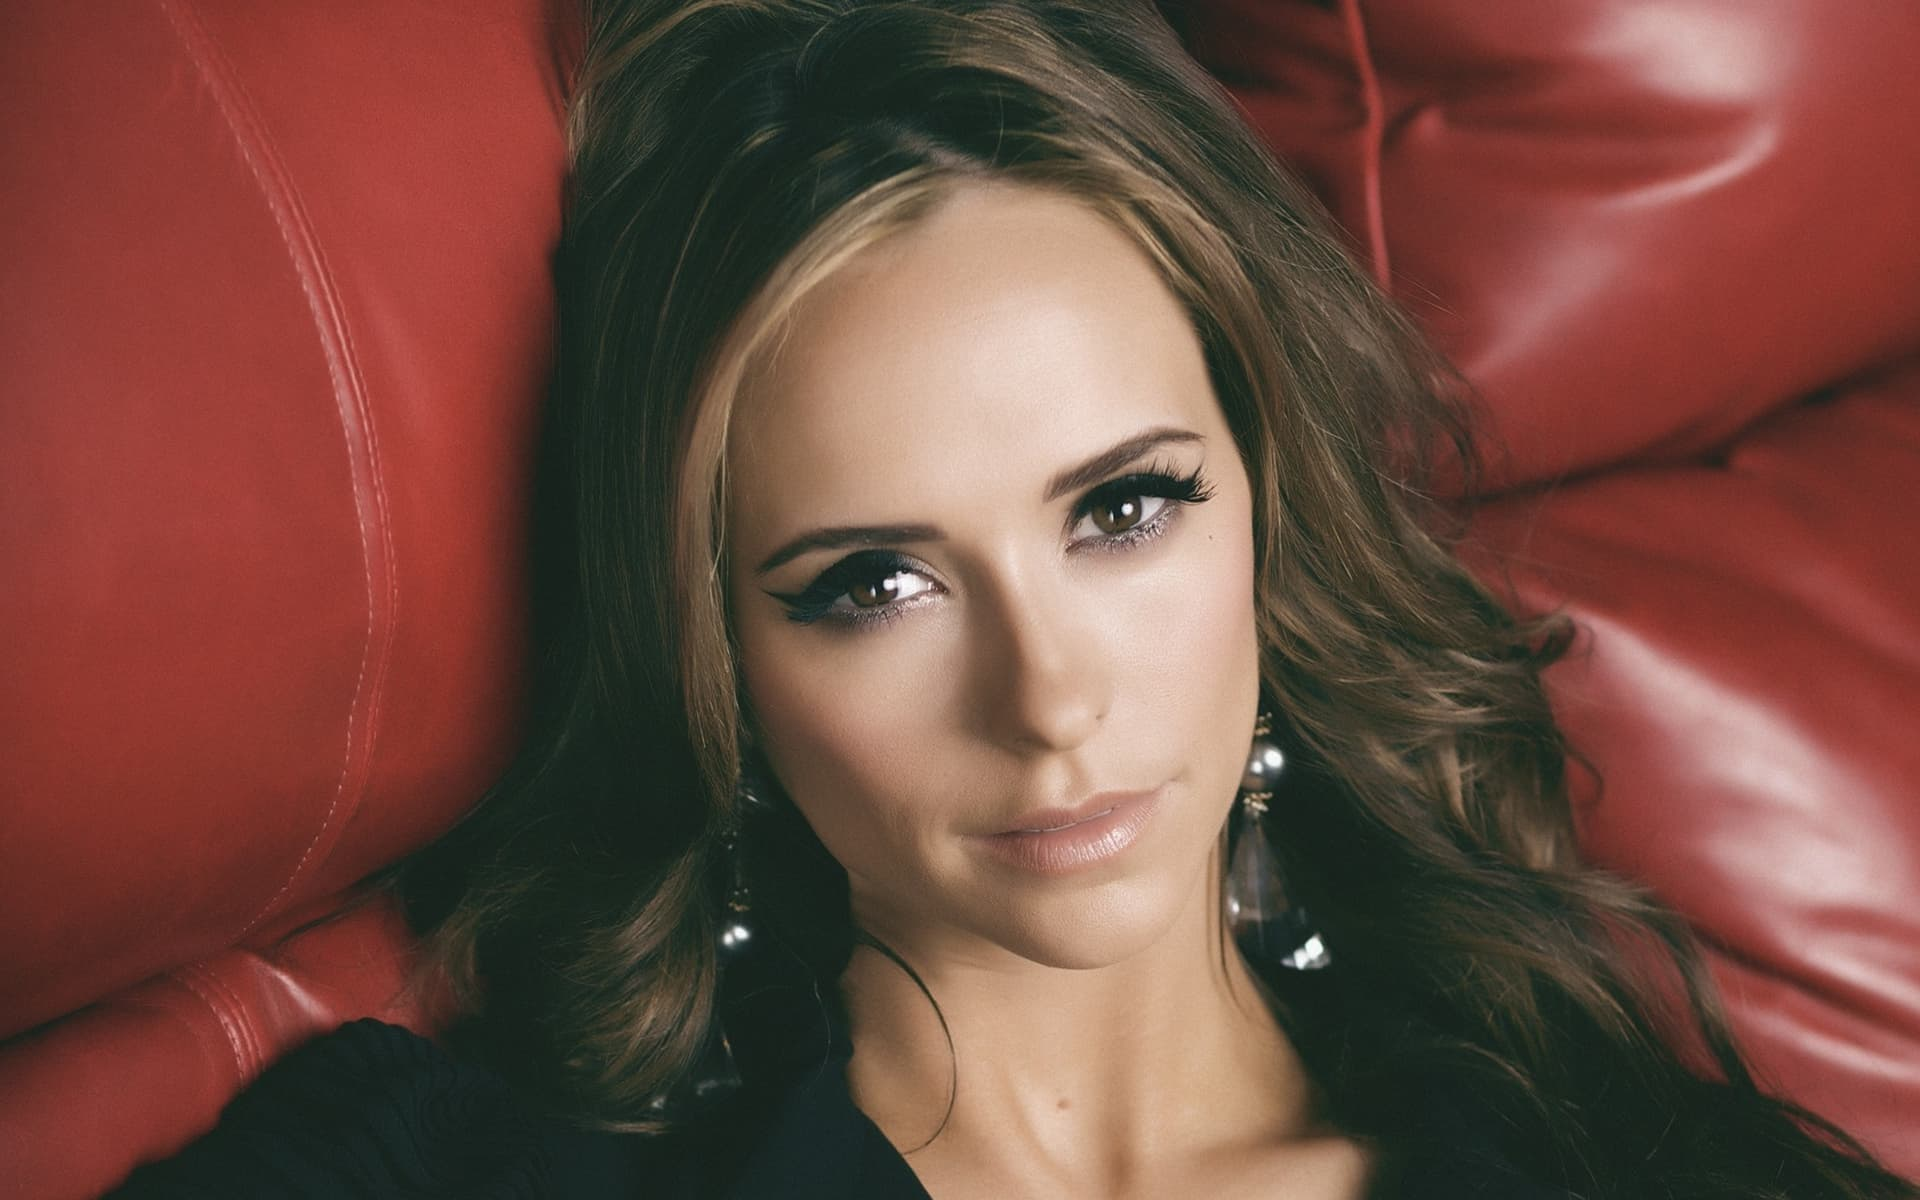 Wallpaper Hd Jennifer Love : 28+ Jennifer Love Hewitt wallpapers High Quality Download